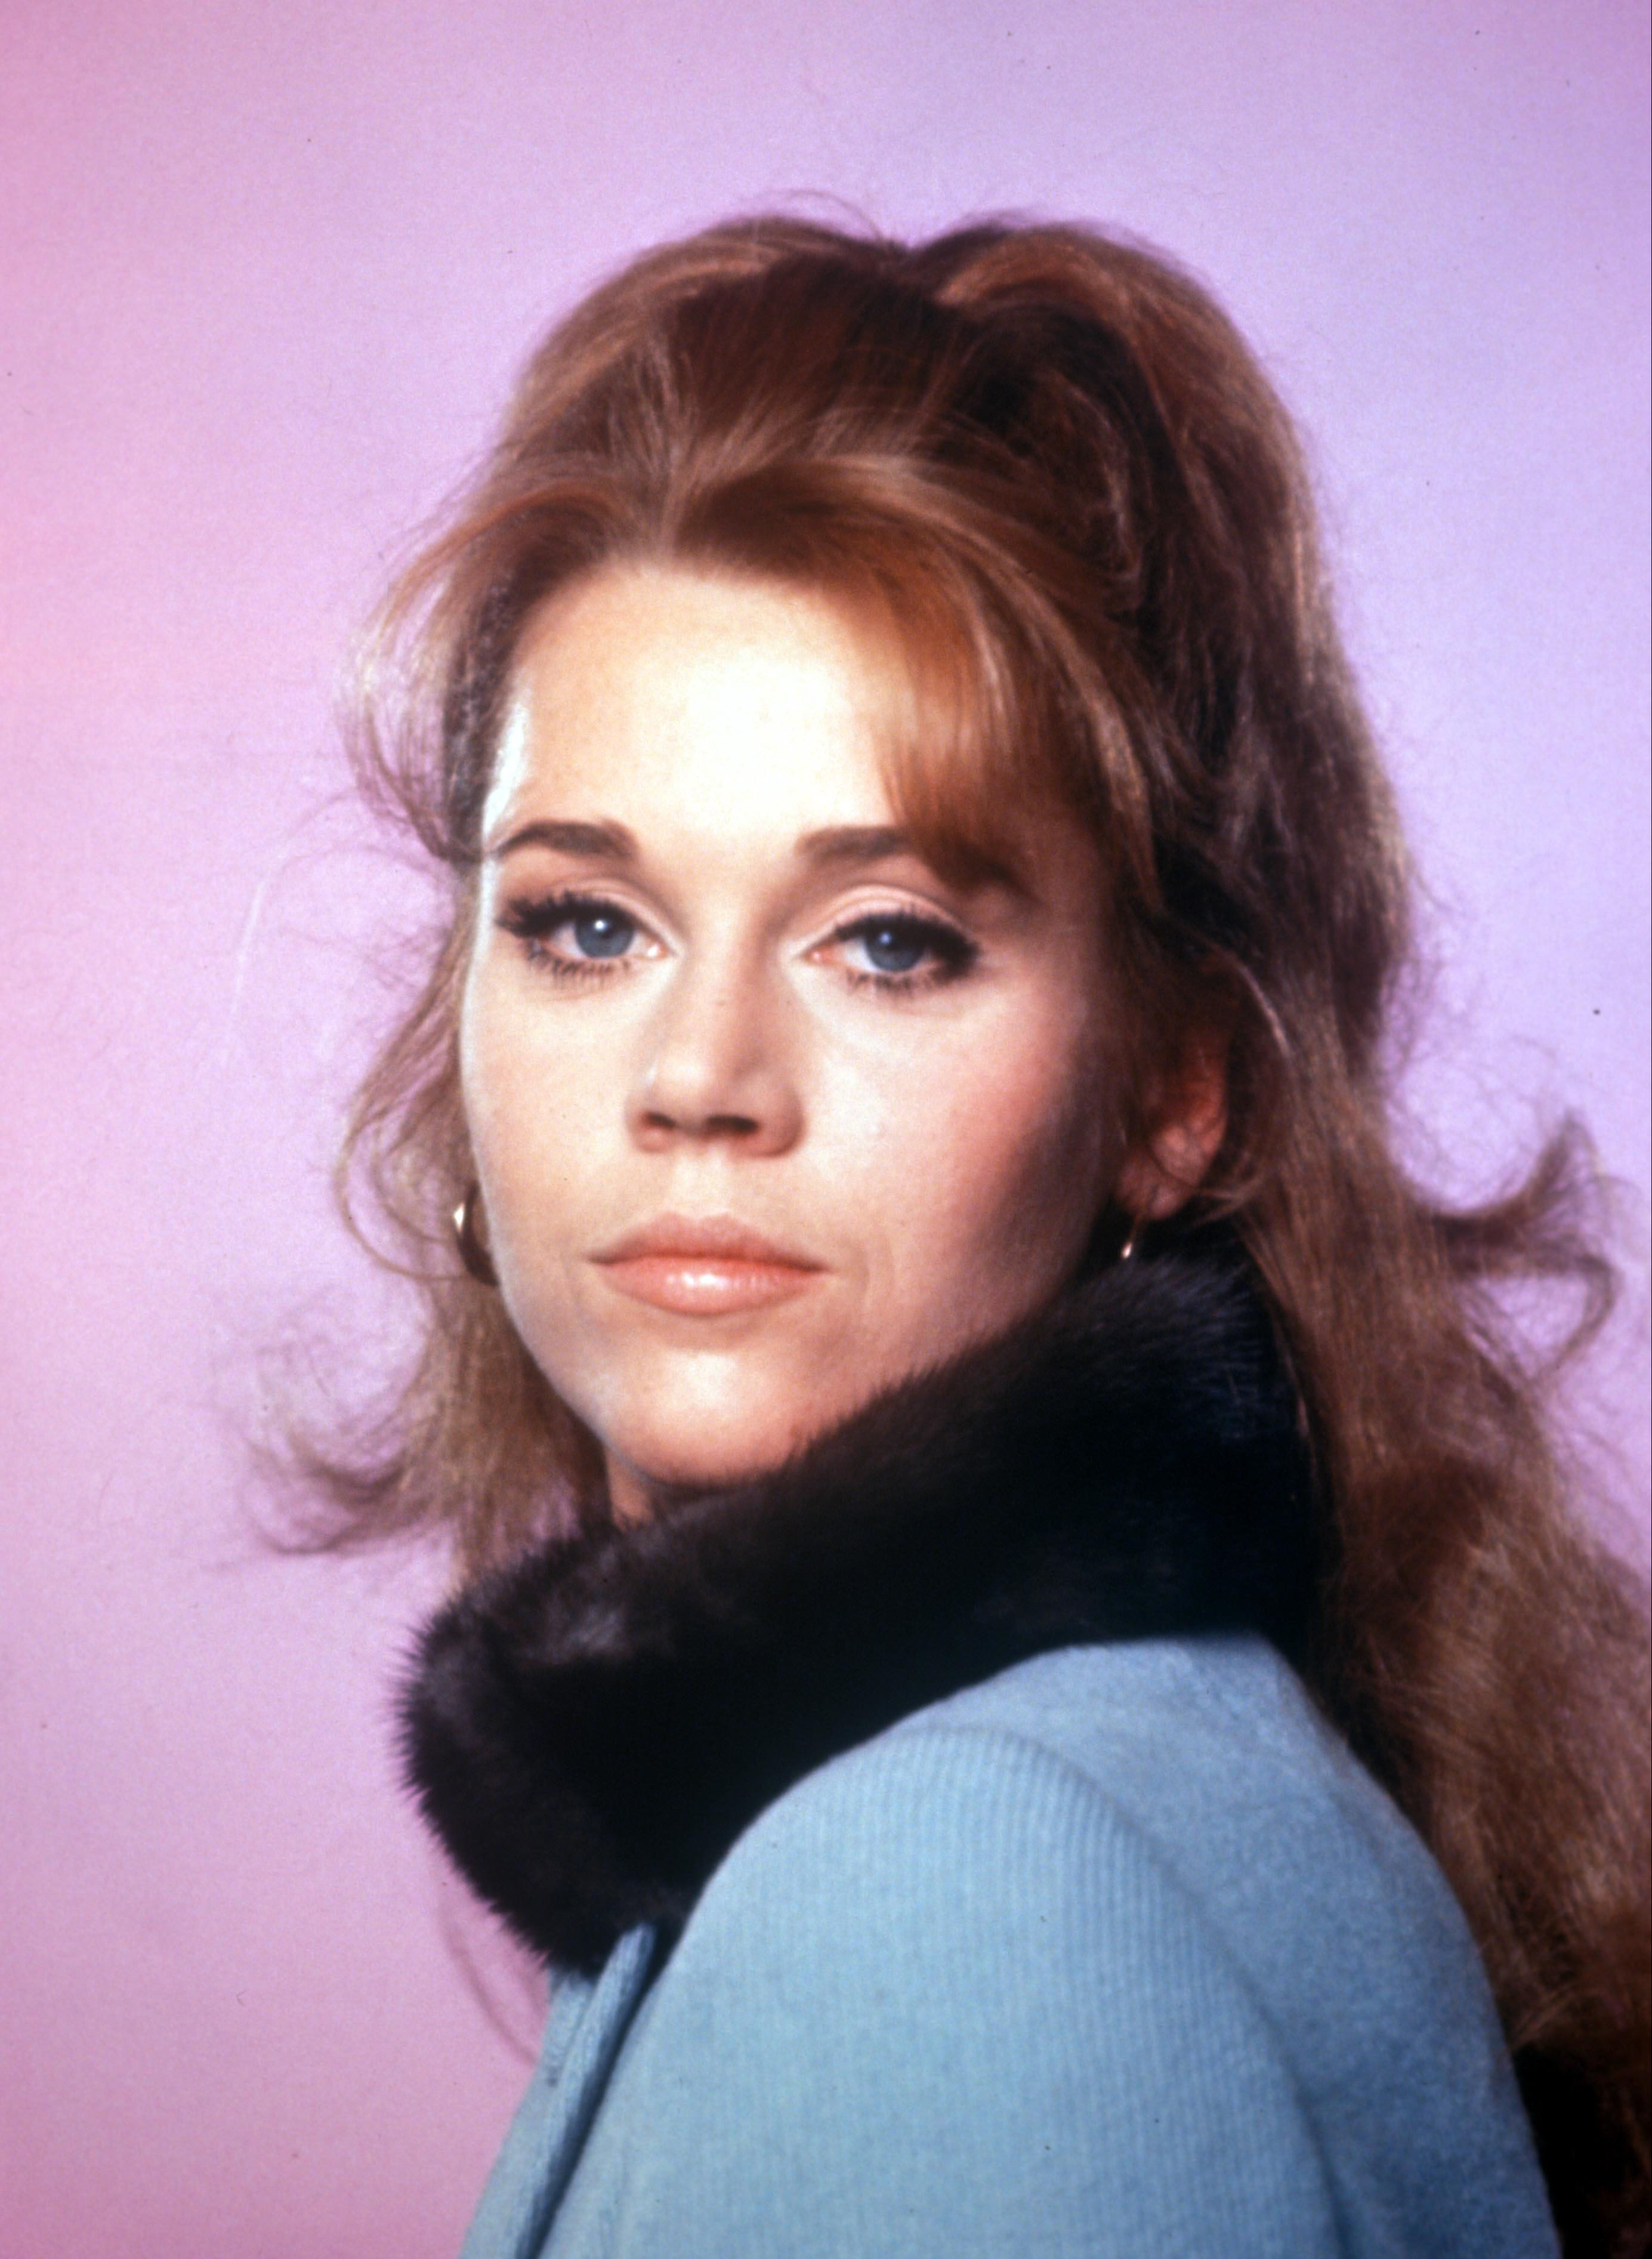 Jane Fonda as a young woman with reddish brown hair in the 60s.   Photo: Getty Images